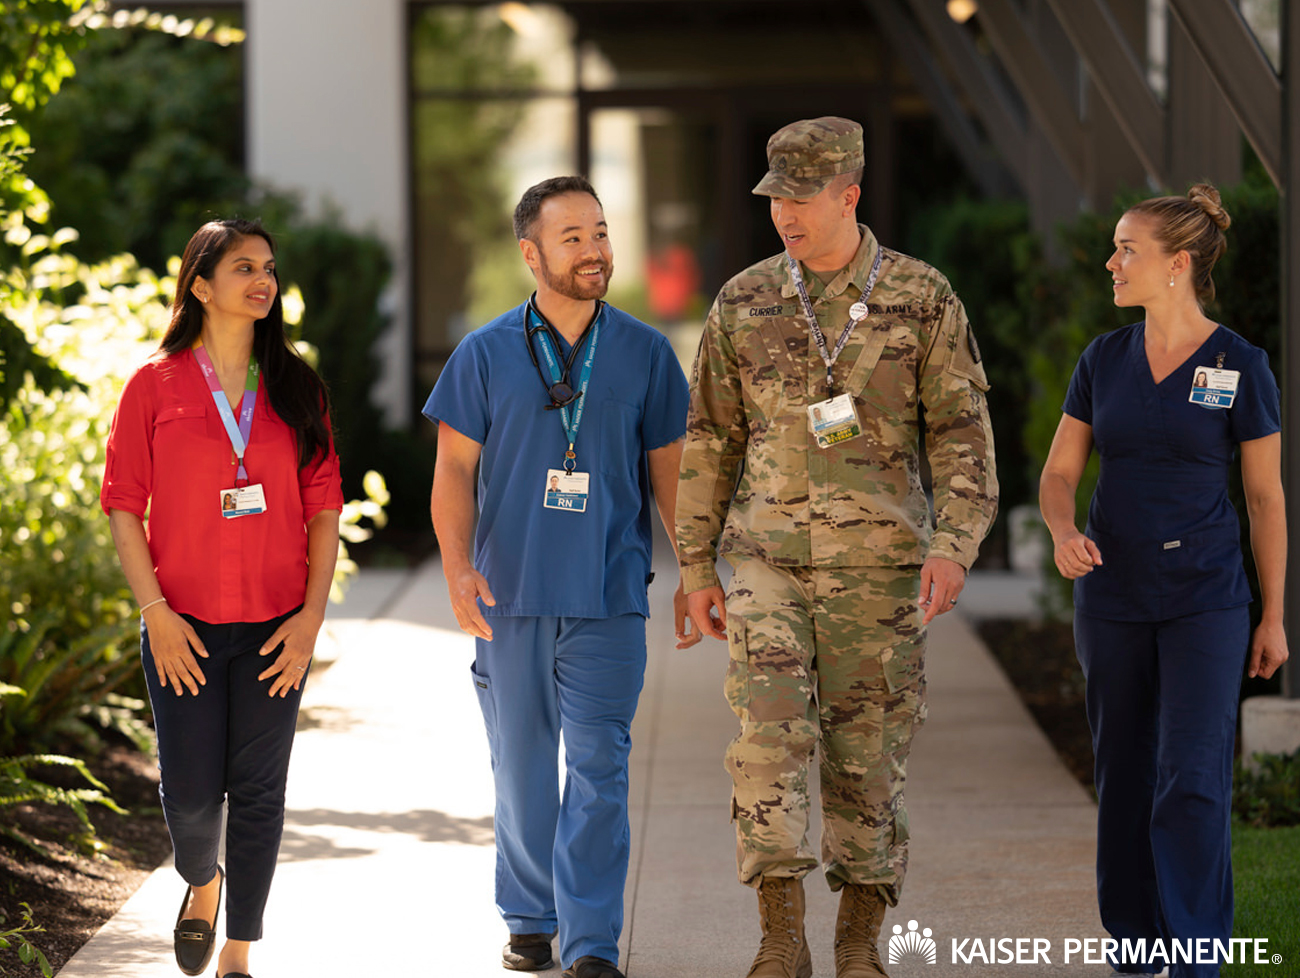 Brandon in his army fatigues walking with 3 other people